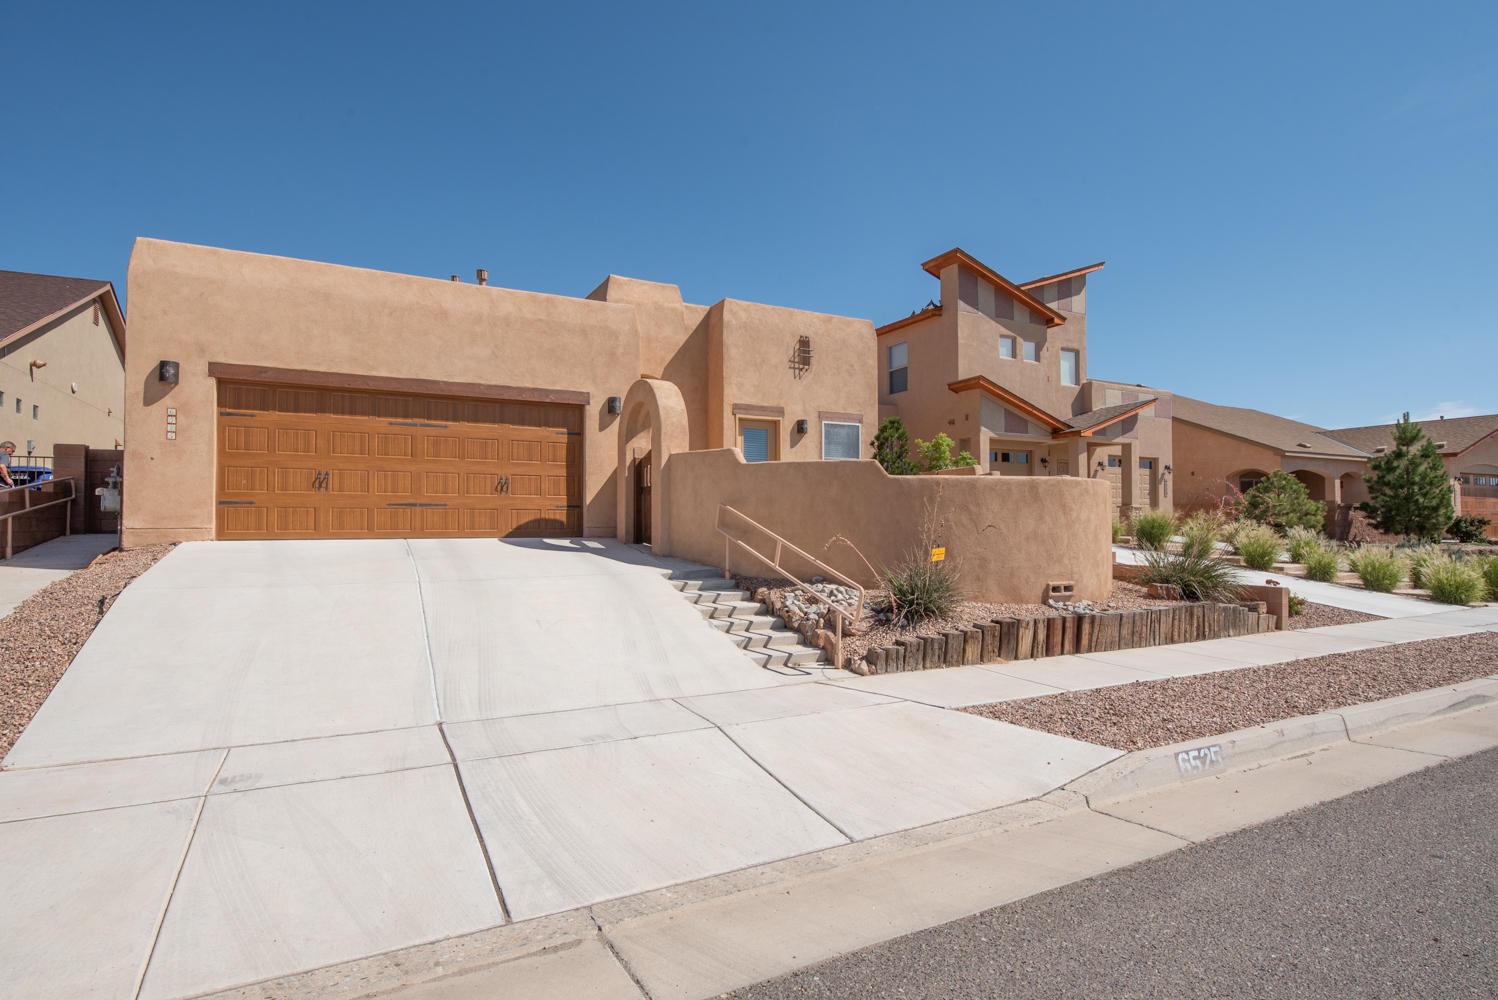 Pristine 1 story Tiffany home with enclosed (walled courtyard), with unobstructed views of the Sandias. This is your next home with, new stainless steel appliance (with warranty-2019), pull out drawers inside kitchen cabinets, RO system(2019, new custom finish garage door (2019), water softener, one year old ION Photovoltaics Solar system (owned by seller) plus Low-Windows for amazing energy savings . This home is also handicapped accessible , with a front bedroom (with ramp and door) to an open courtyard. Beautifully landscaped backyard with water feature (flowing like a river and new pump).There's more, lighted nicho's, beautiful ceiling fans, skylights, jack and jill bathroom, huge pantry, utility room, beams and corbels...even 220 V in the garage. Kitchen opens to the great room.